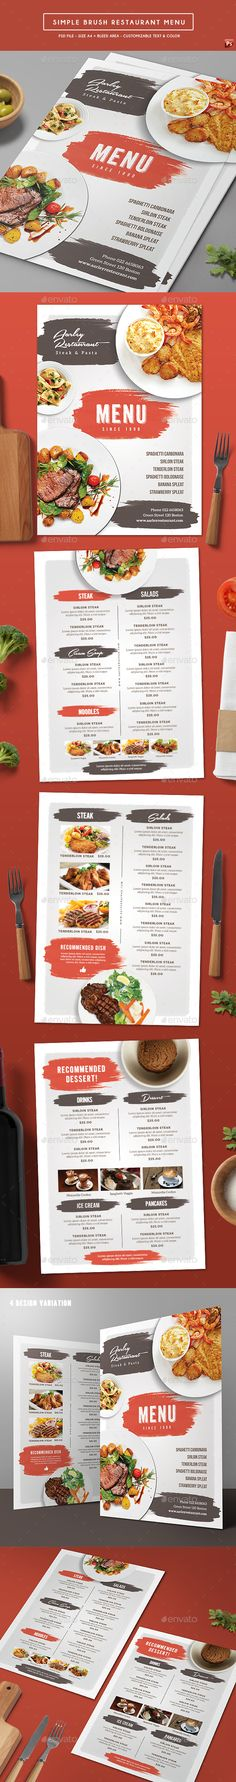 Simple Brush Restaurant Menu Template PSD